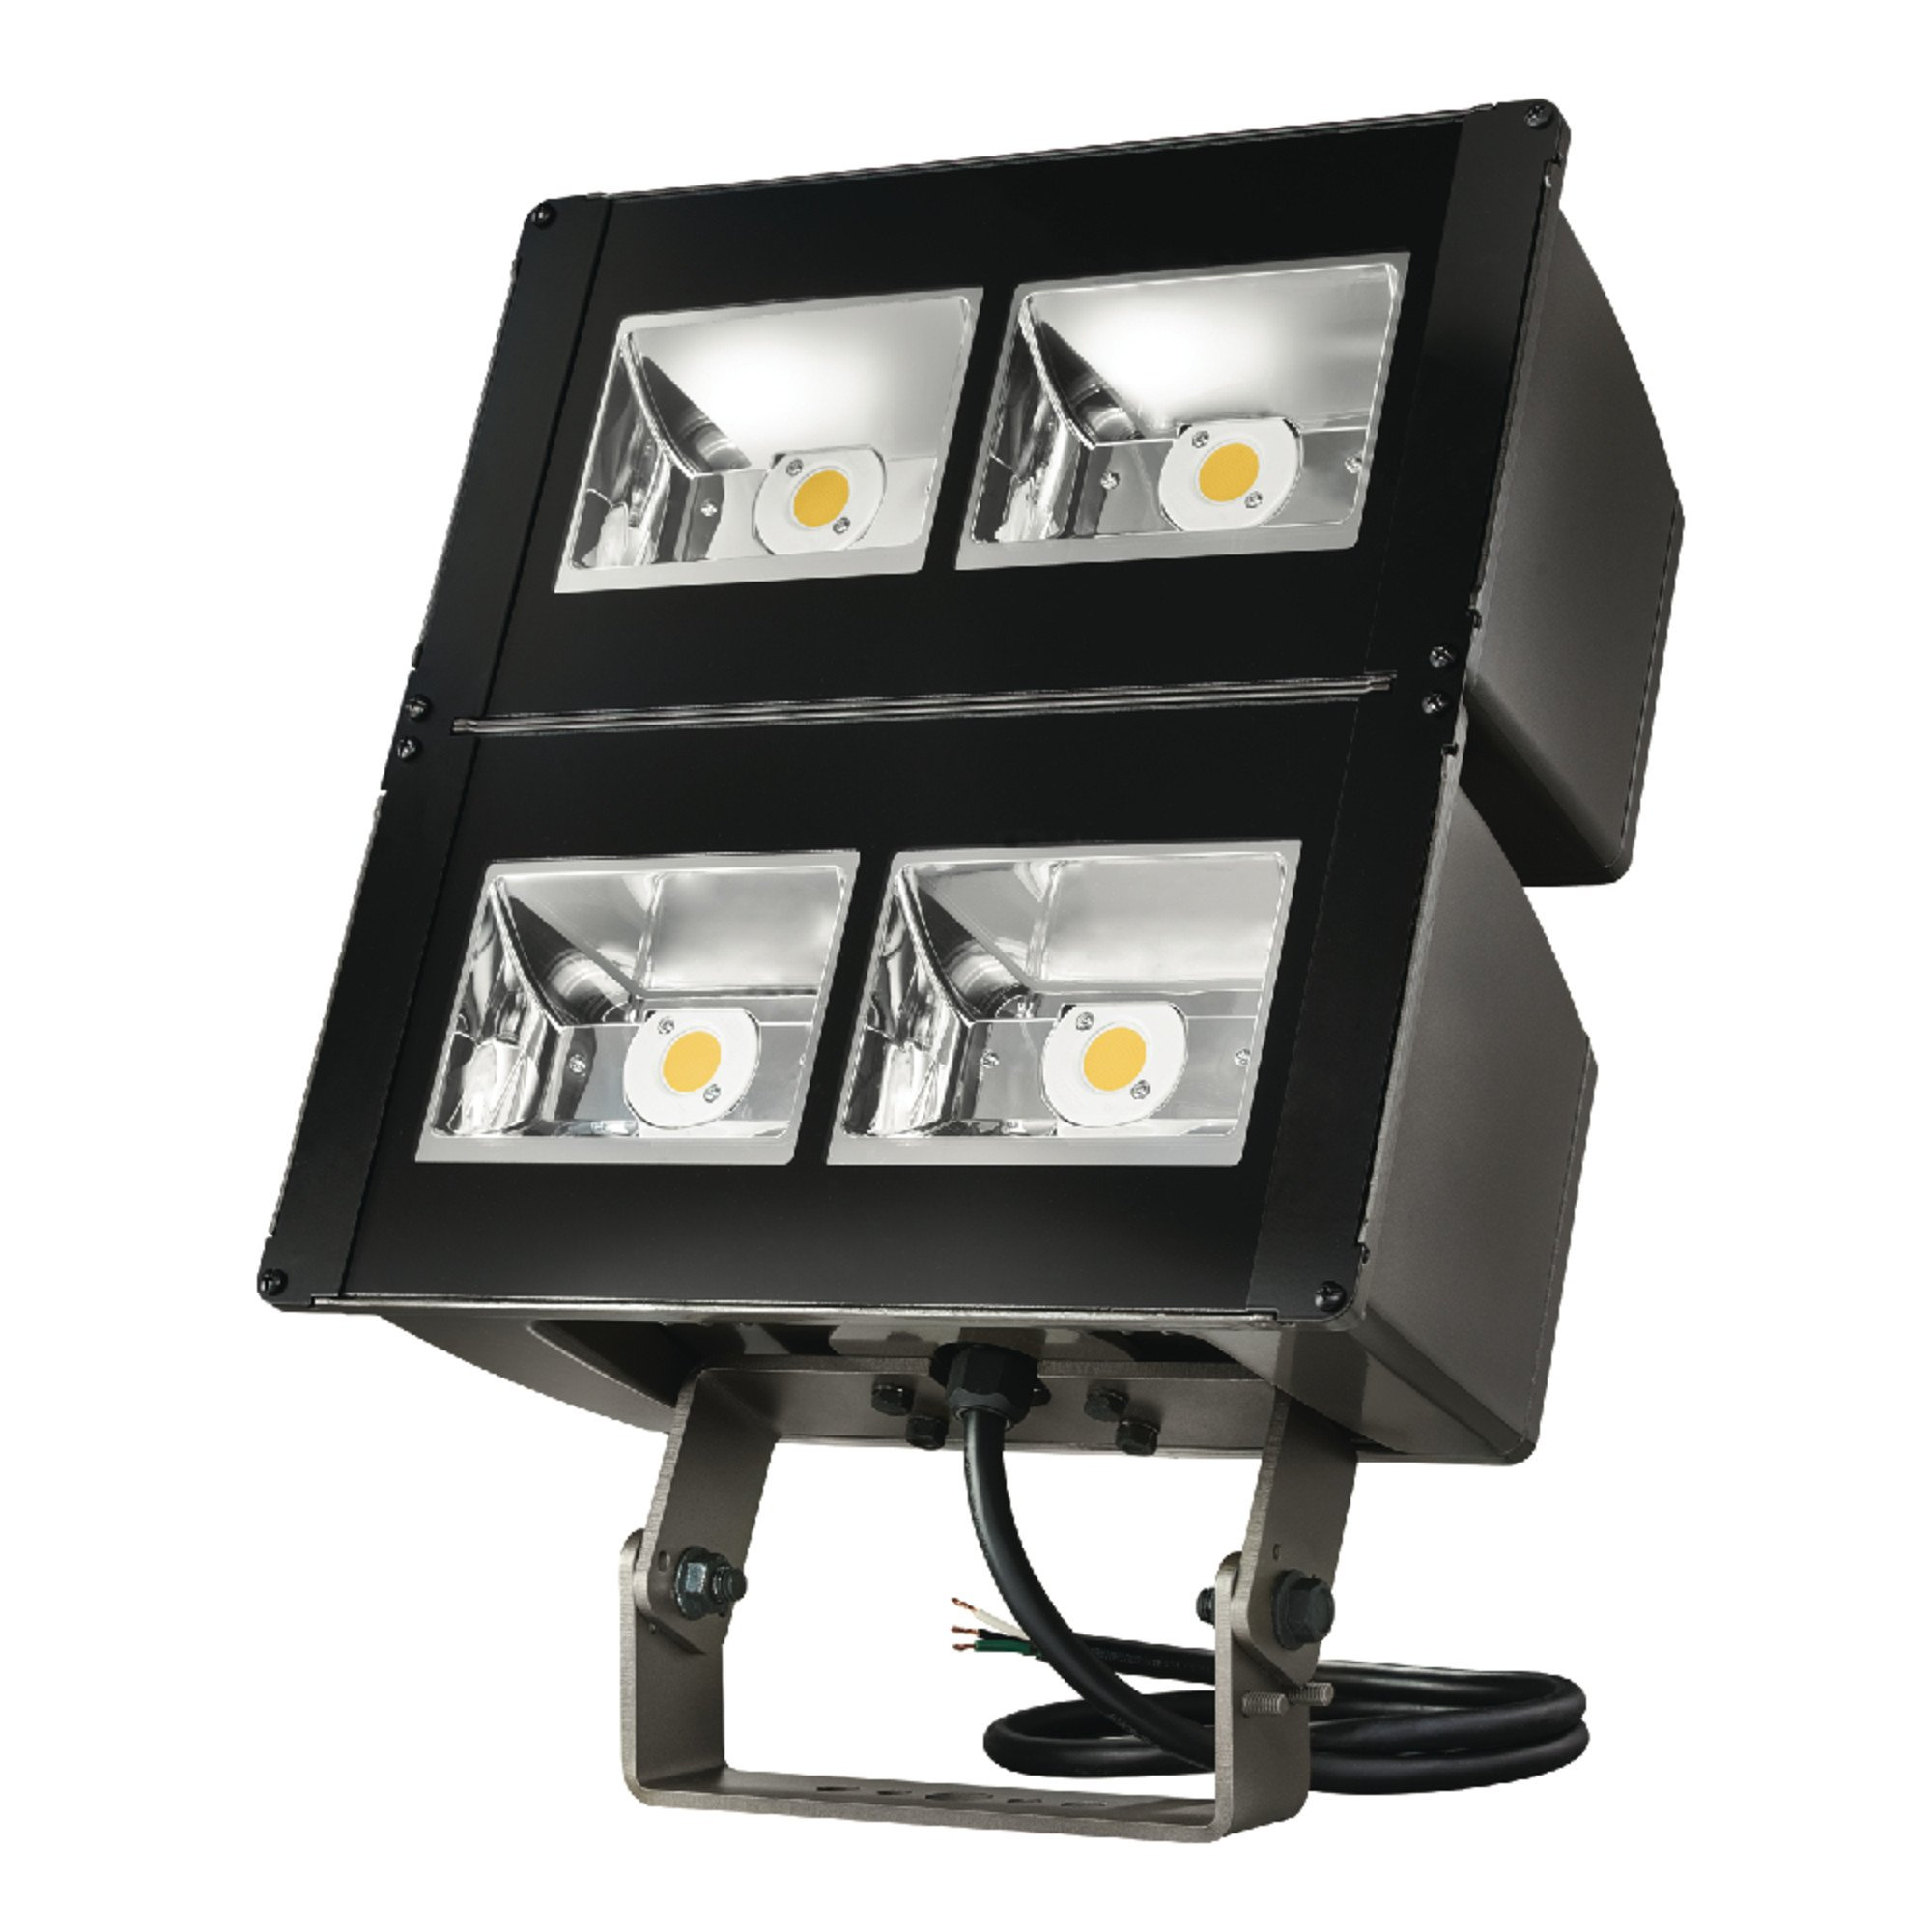 Lumark Nffld-L-C100-T Night Falcon 252W Carbon Outdoor Integrated LED Area Light with Trunnion Mounting, Bronze